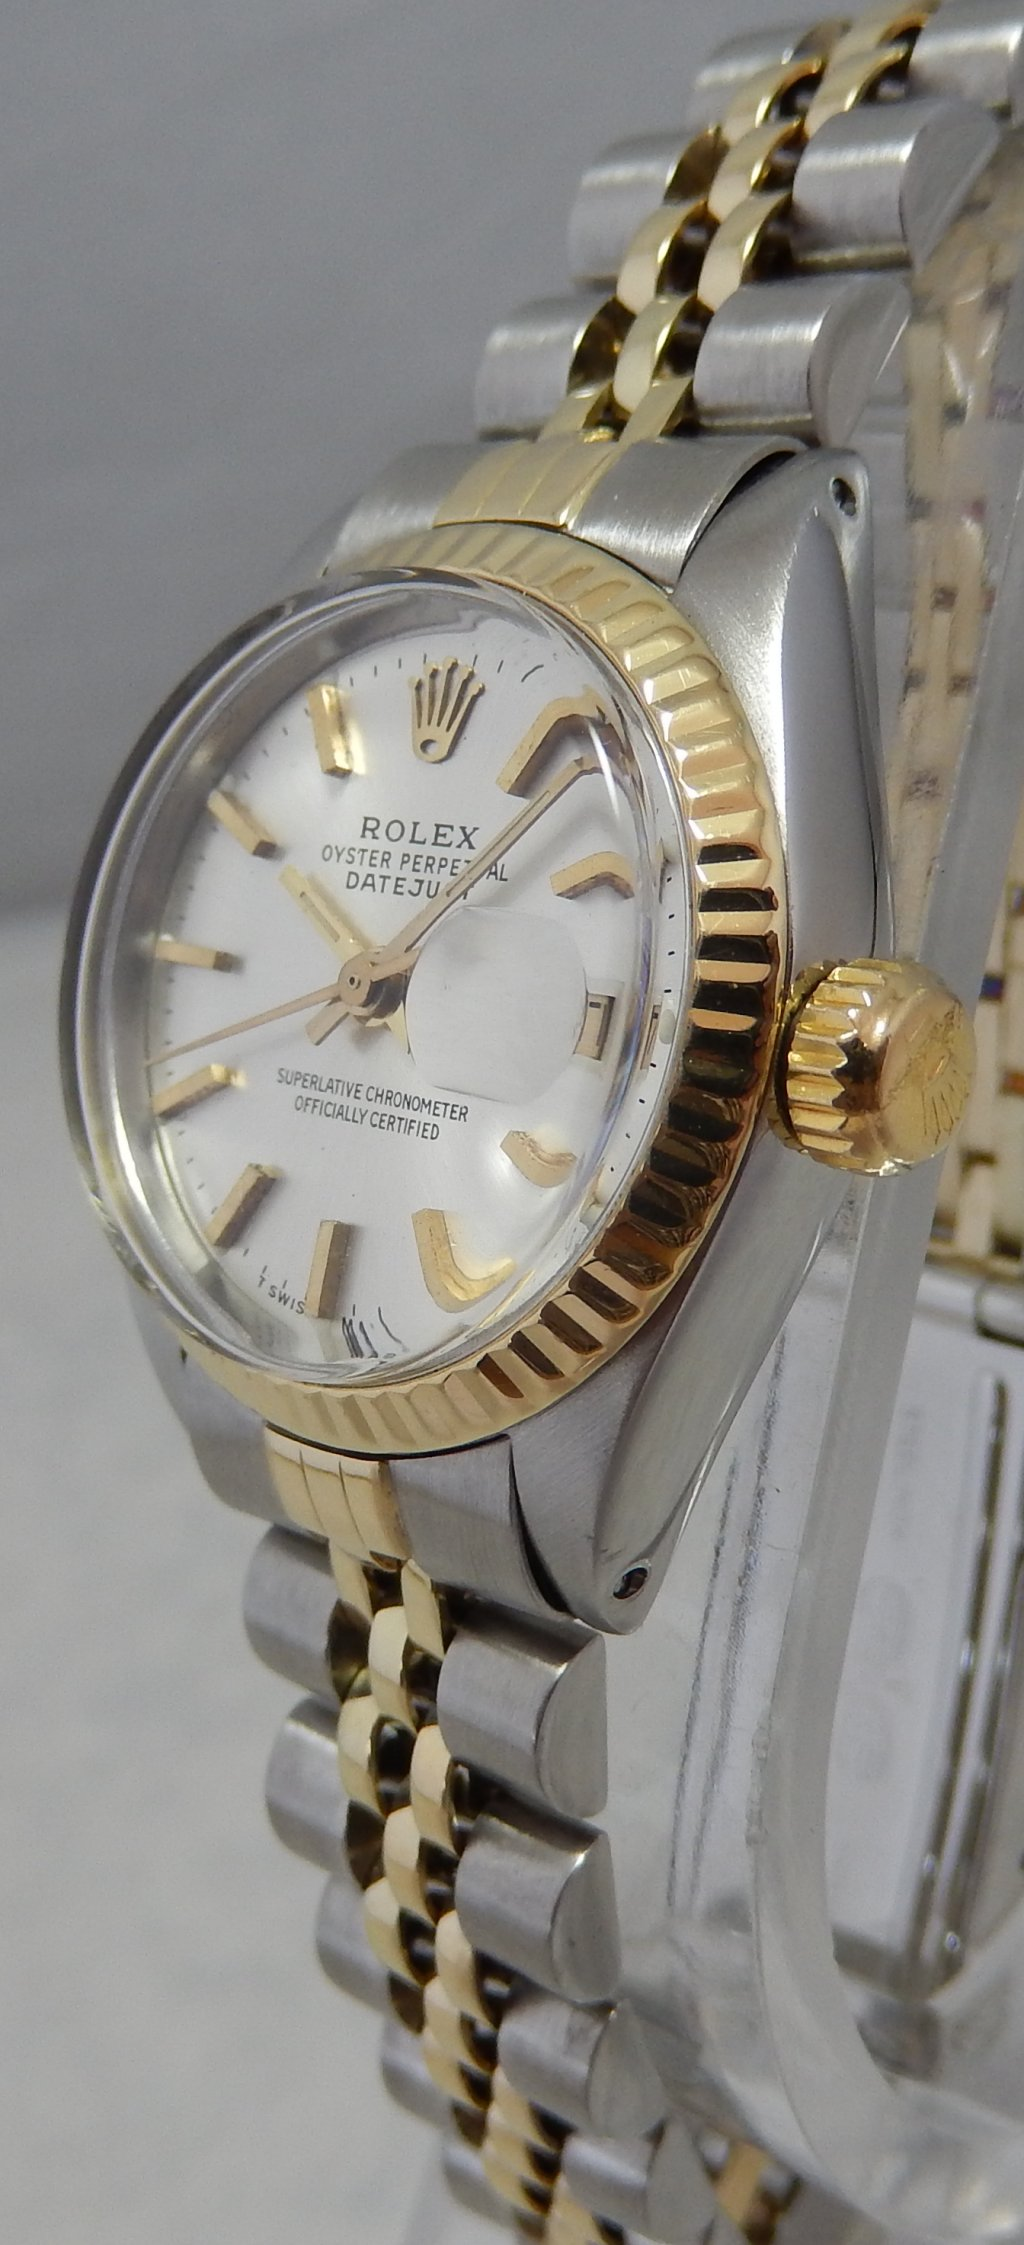 743dd6cd2e It is the Rolex Oyster Perpetual Datejust stainless steel and 14k yellow  gold two toned ladies watch with a beautiful silver colored ...